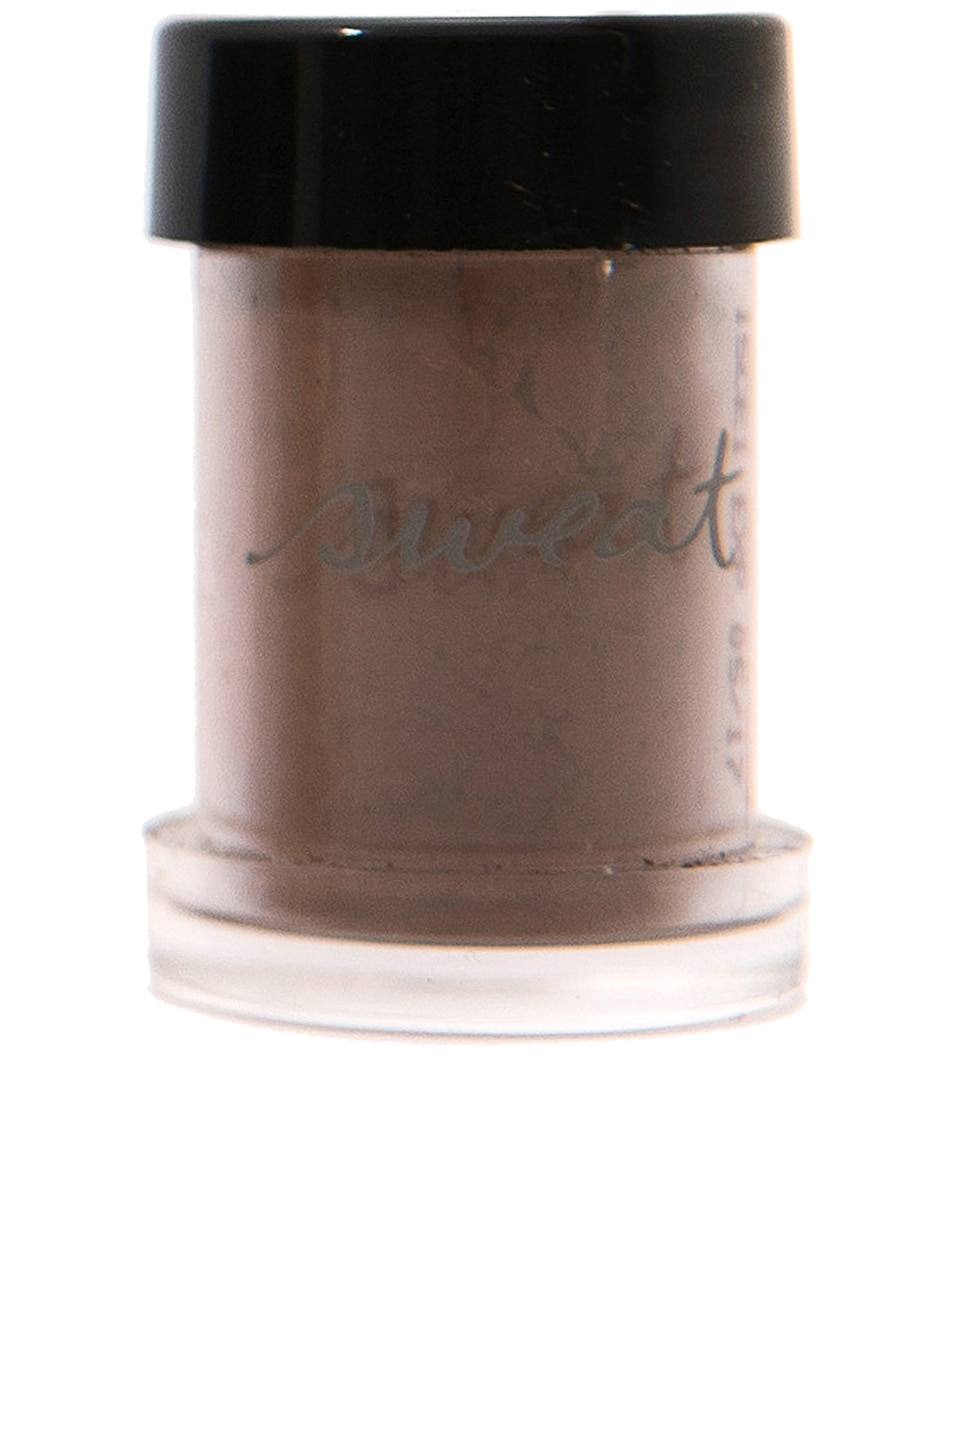 Sweat Cosmetics Mineral Foundation SPF 30 Refill in Shade 500